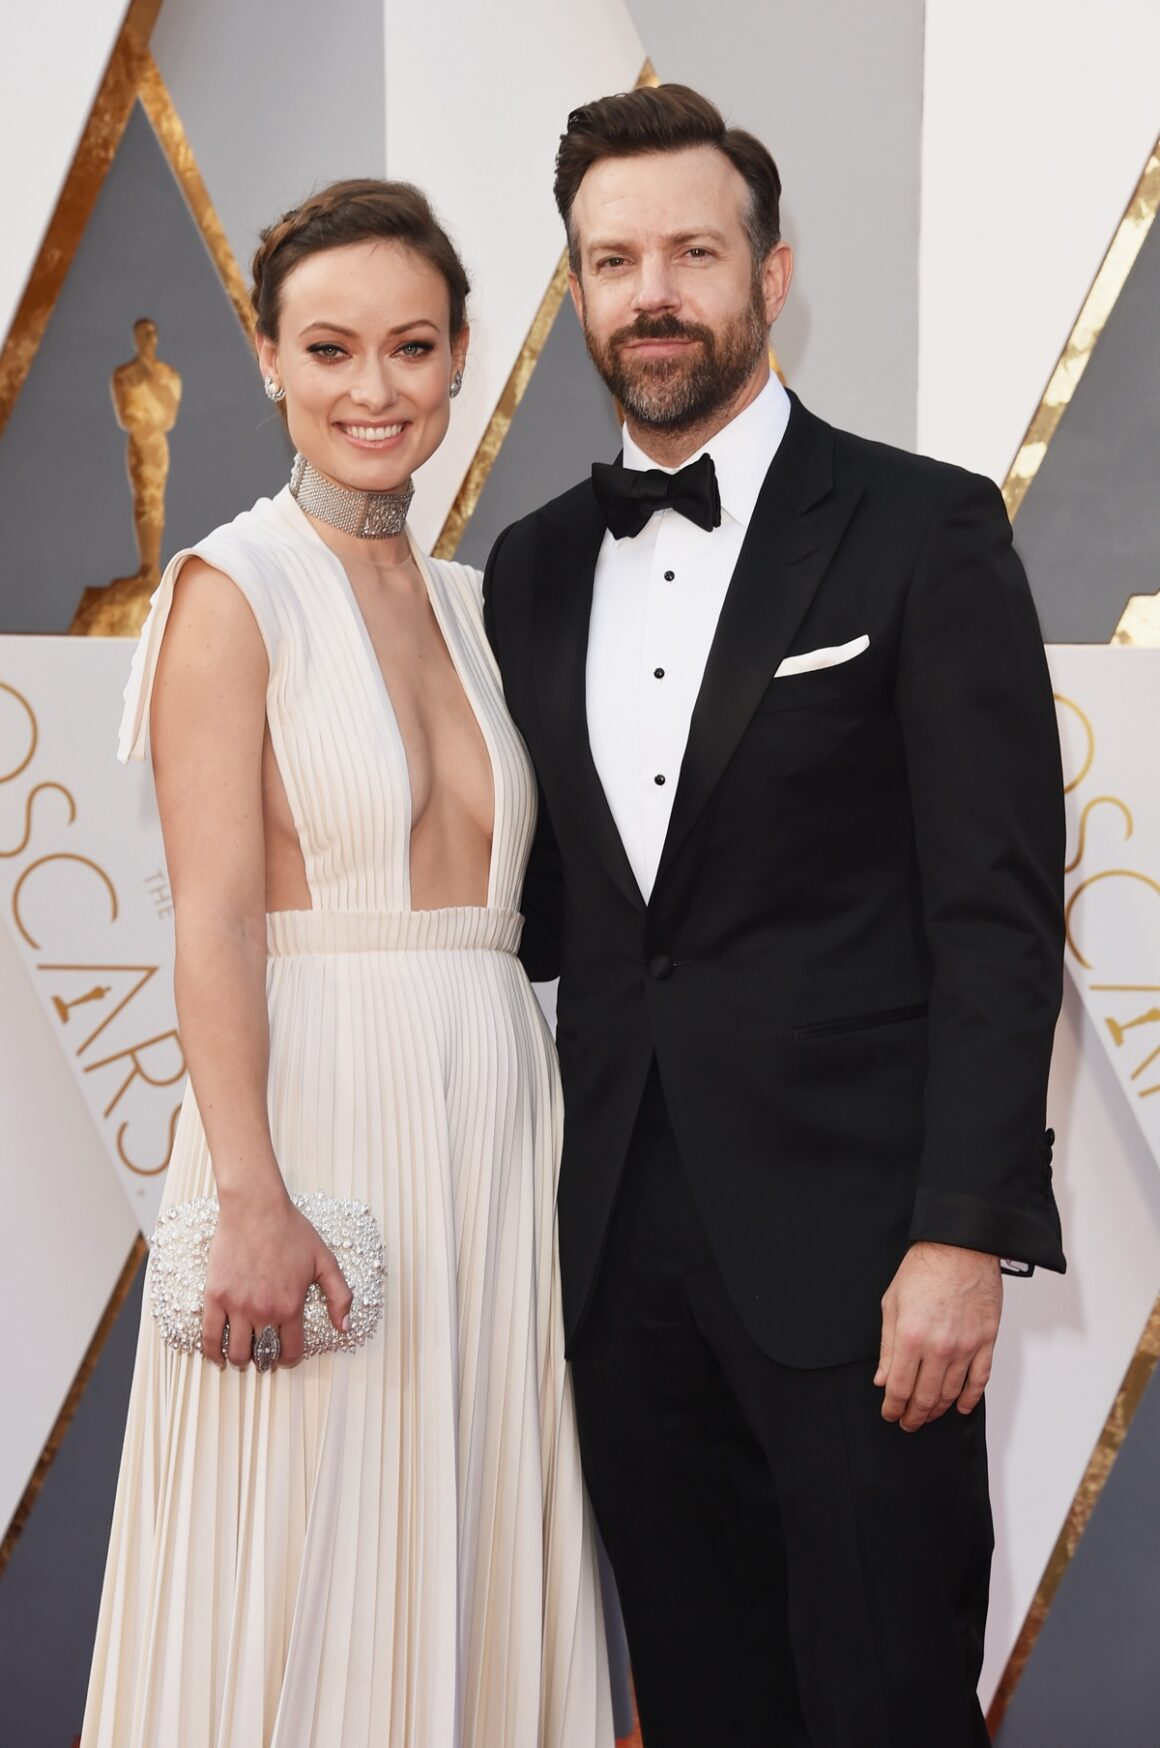 Olivia Wilde and Jason Sudeikis 88th Annual Academy Awards - Arrivals